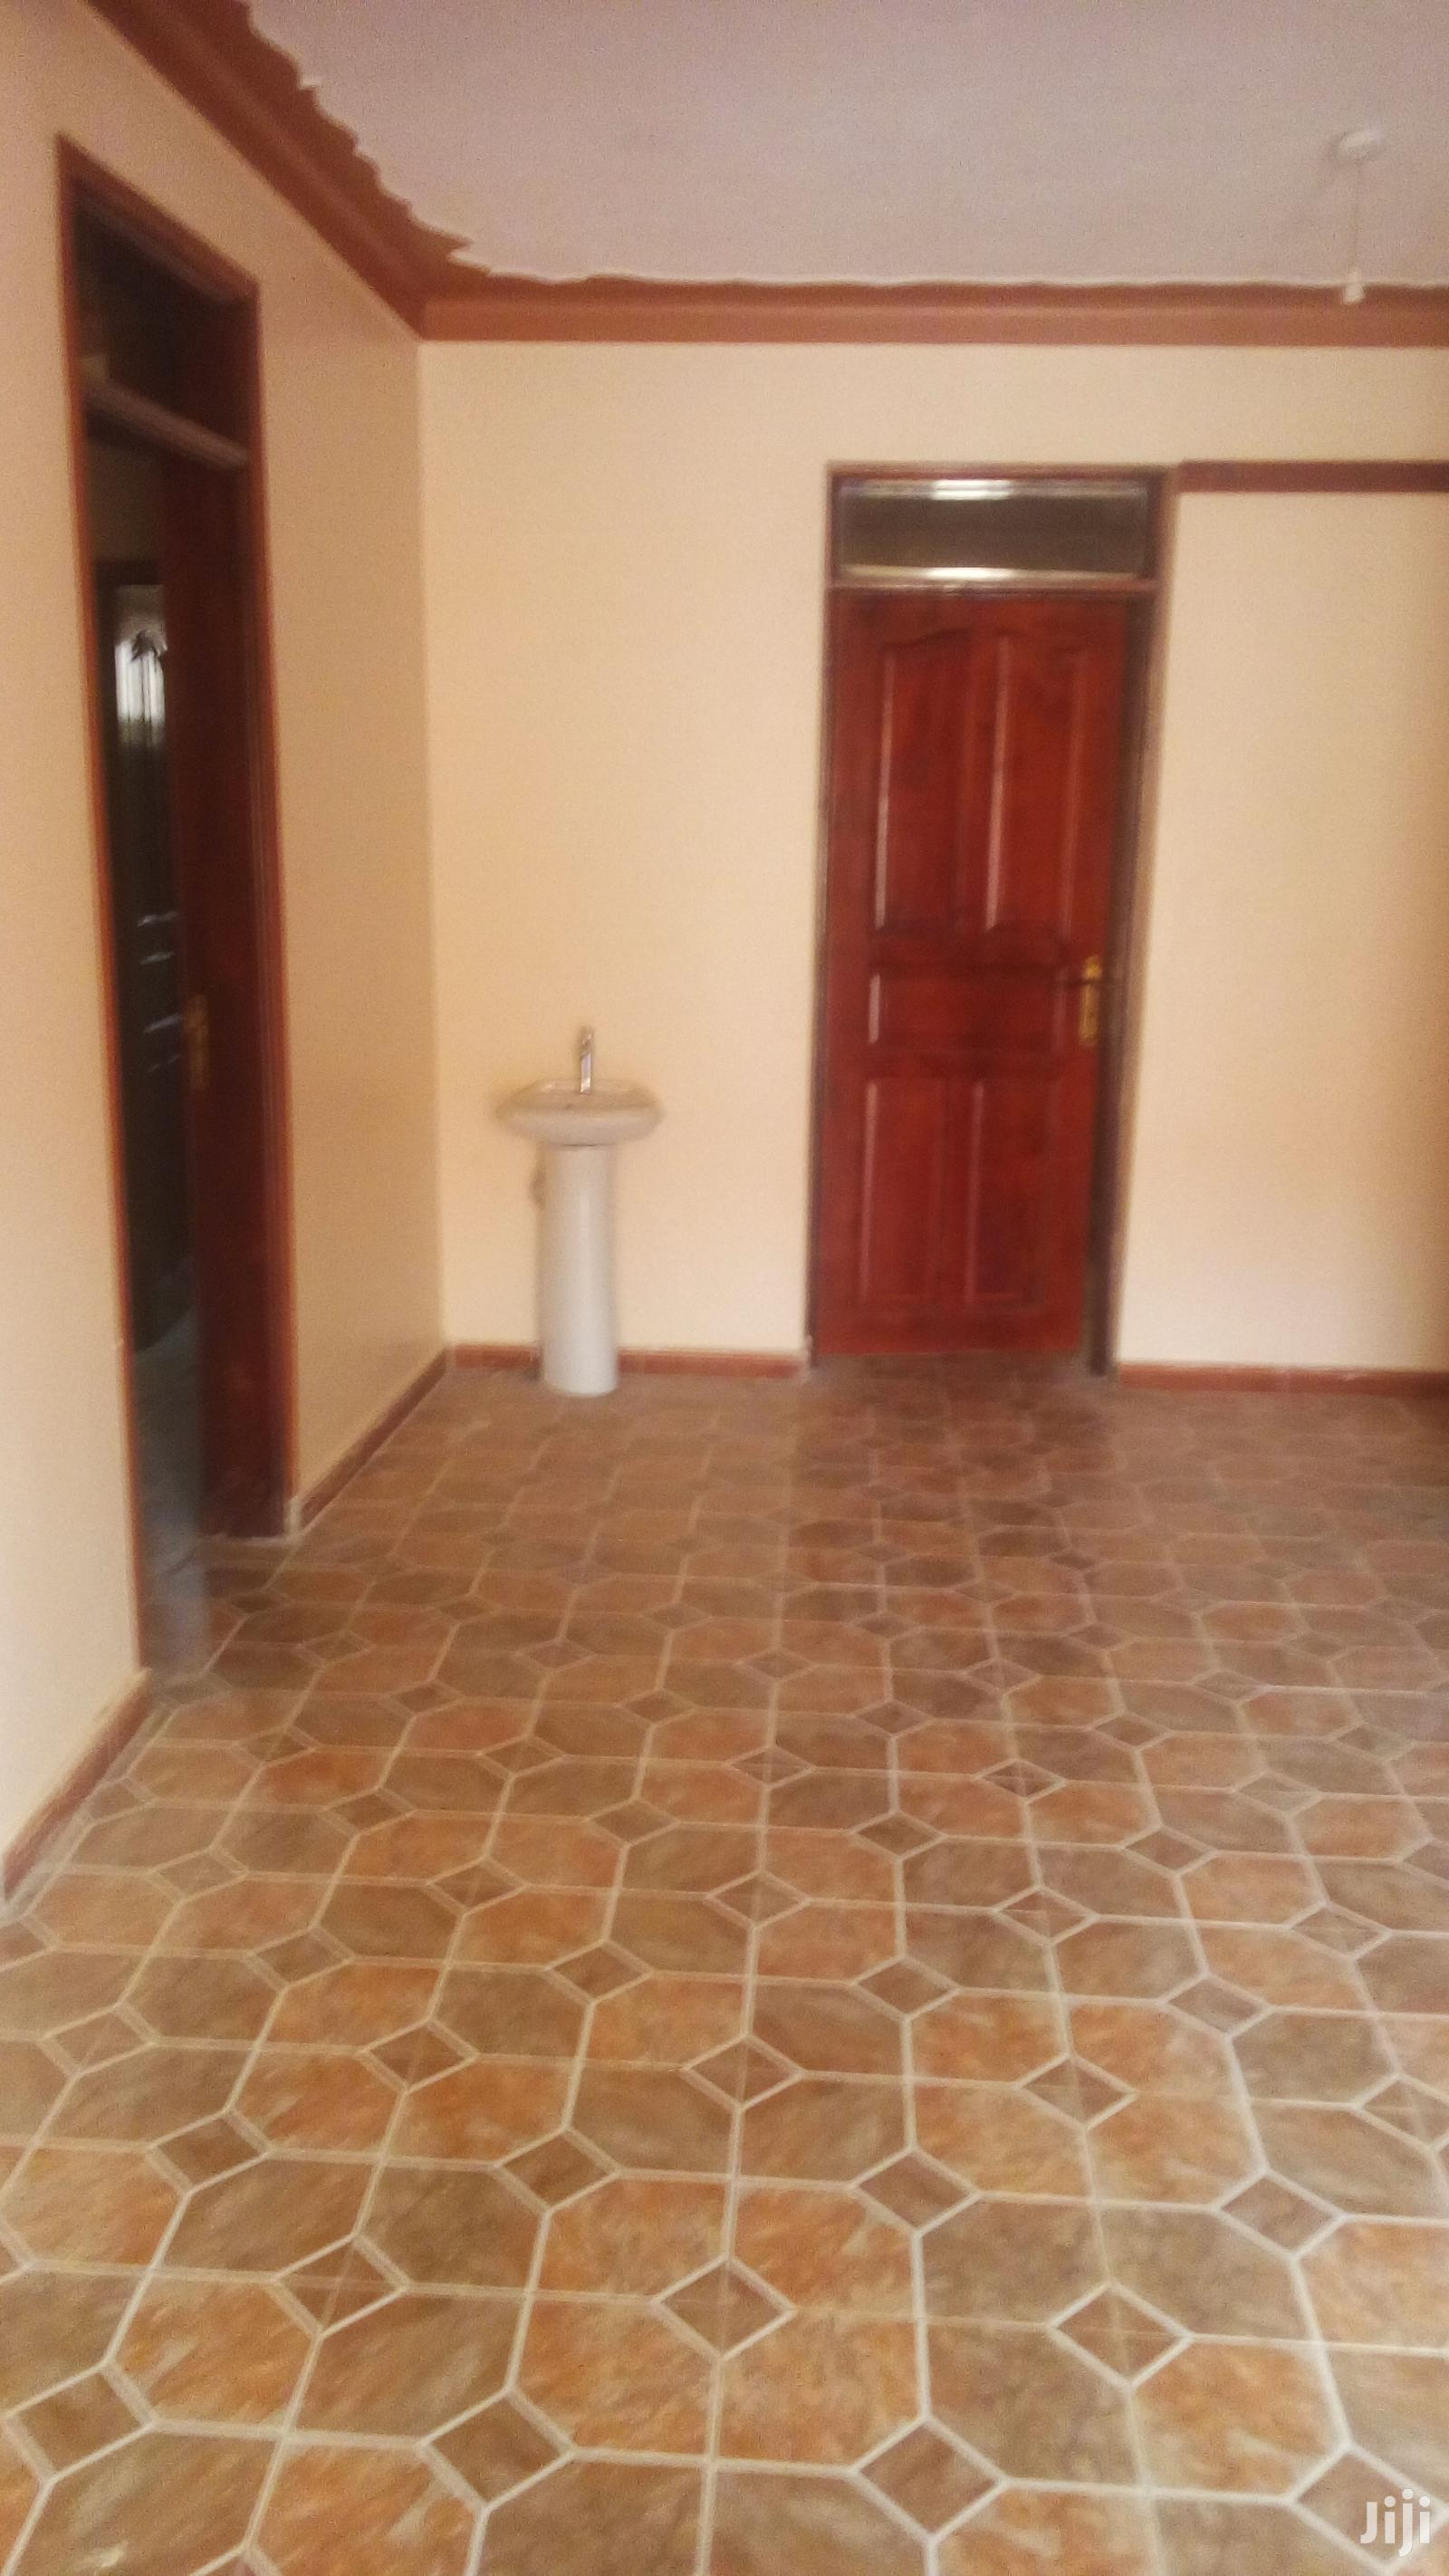 Elgency Single Room House For Rent In Mpererewe | Houses & Apartments For Rent for sale in Kampala, Central Region, Uganda